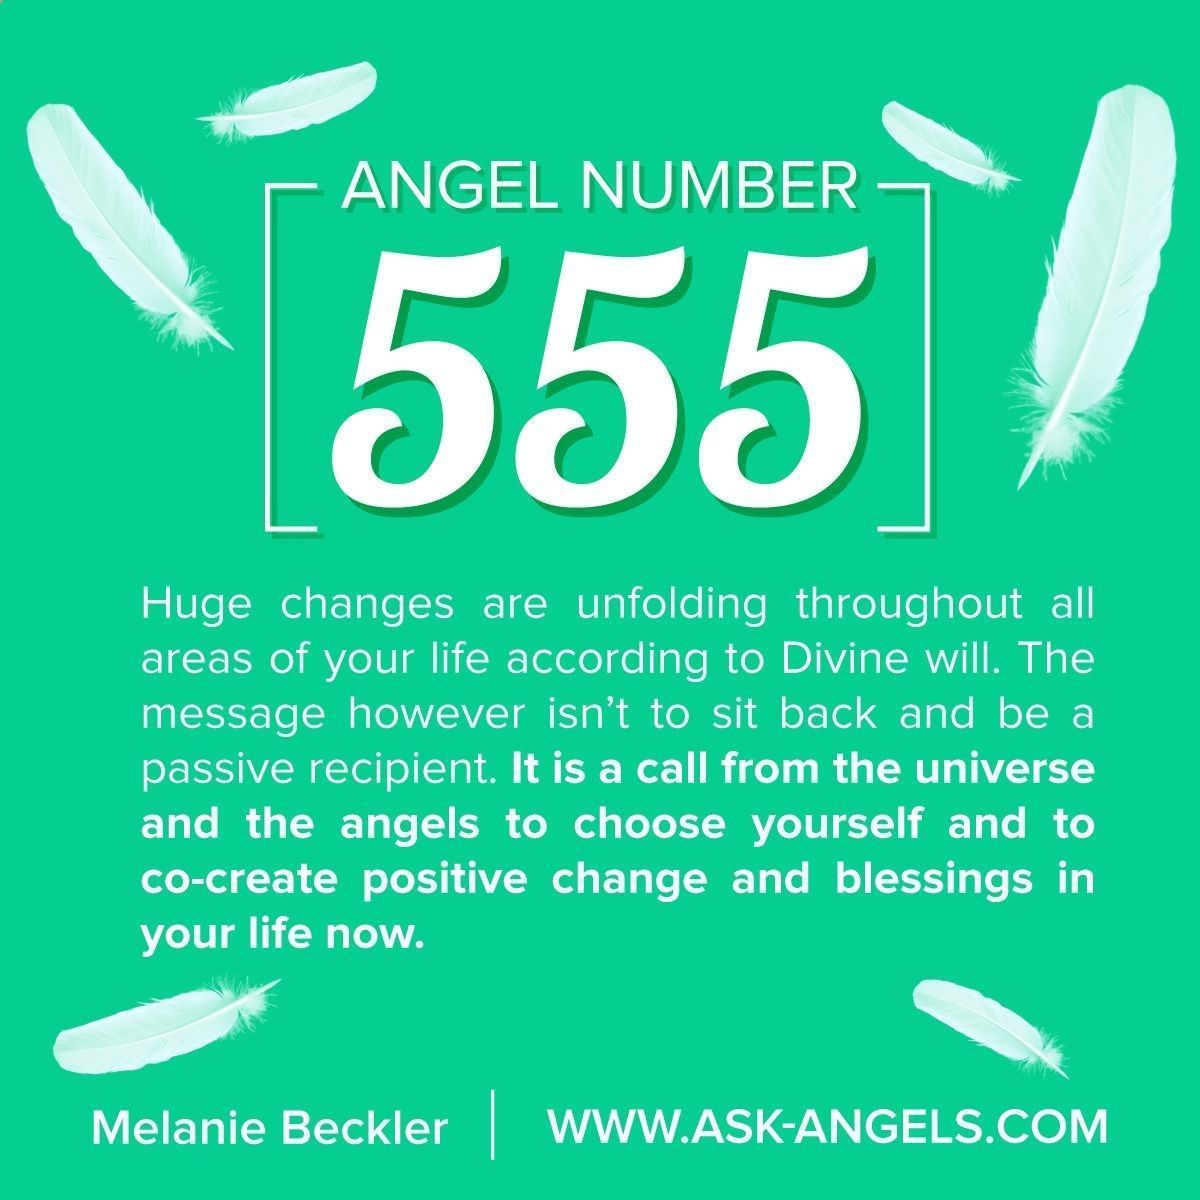 Numerology Spirituality - This morning I woke up at 5:55. Then my ...